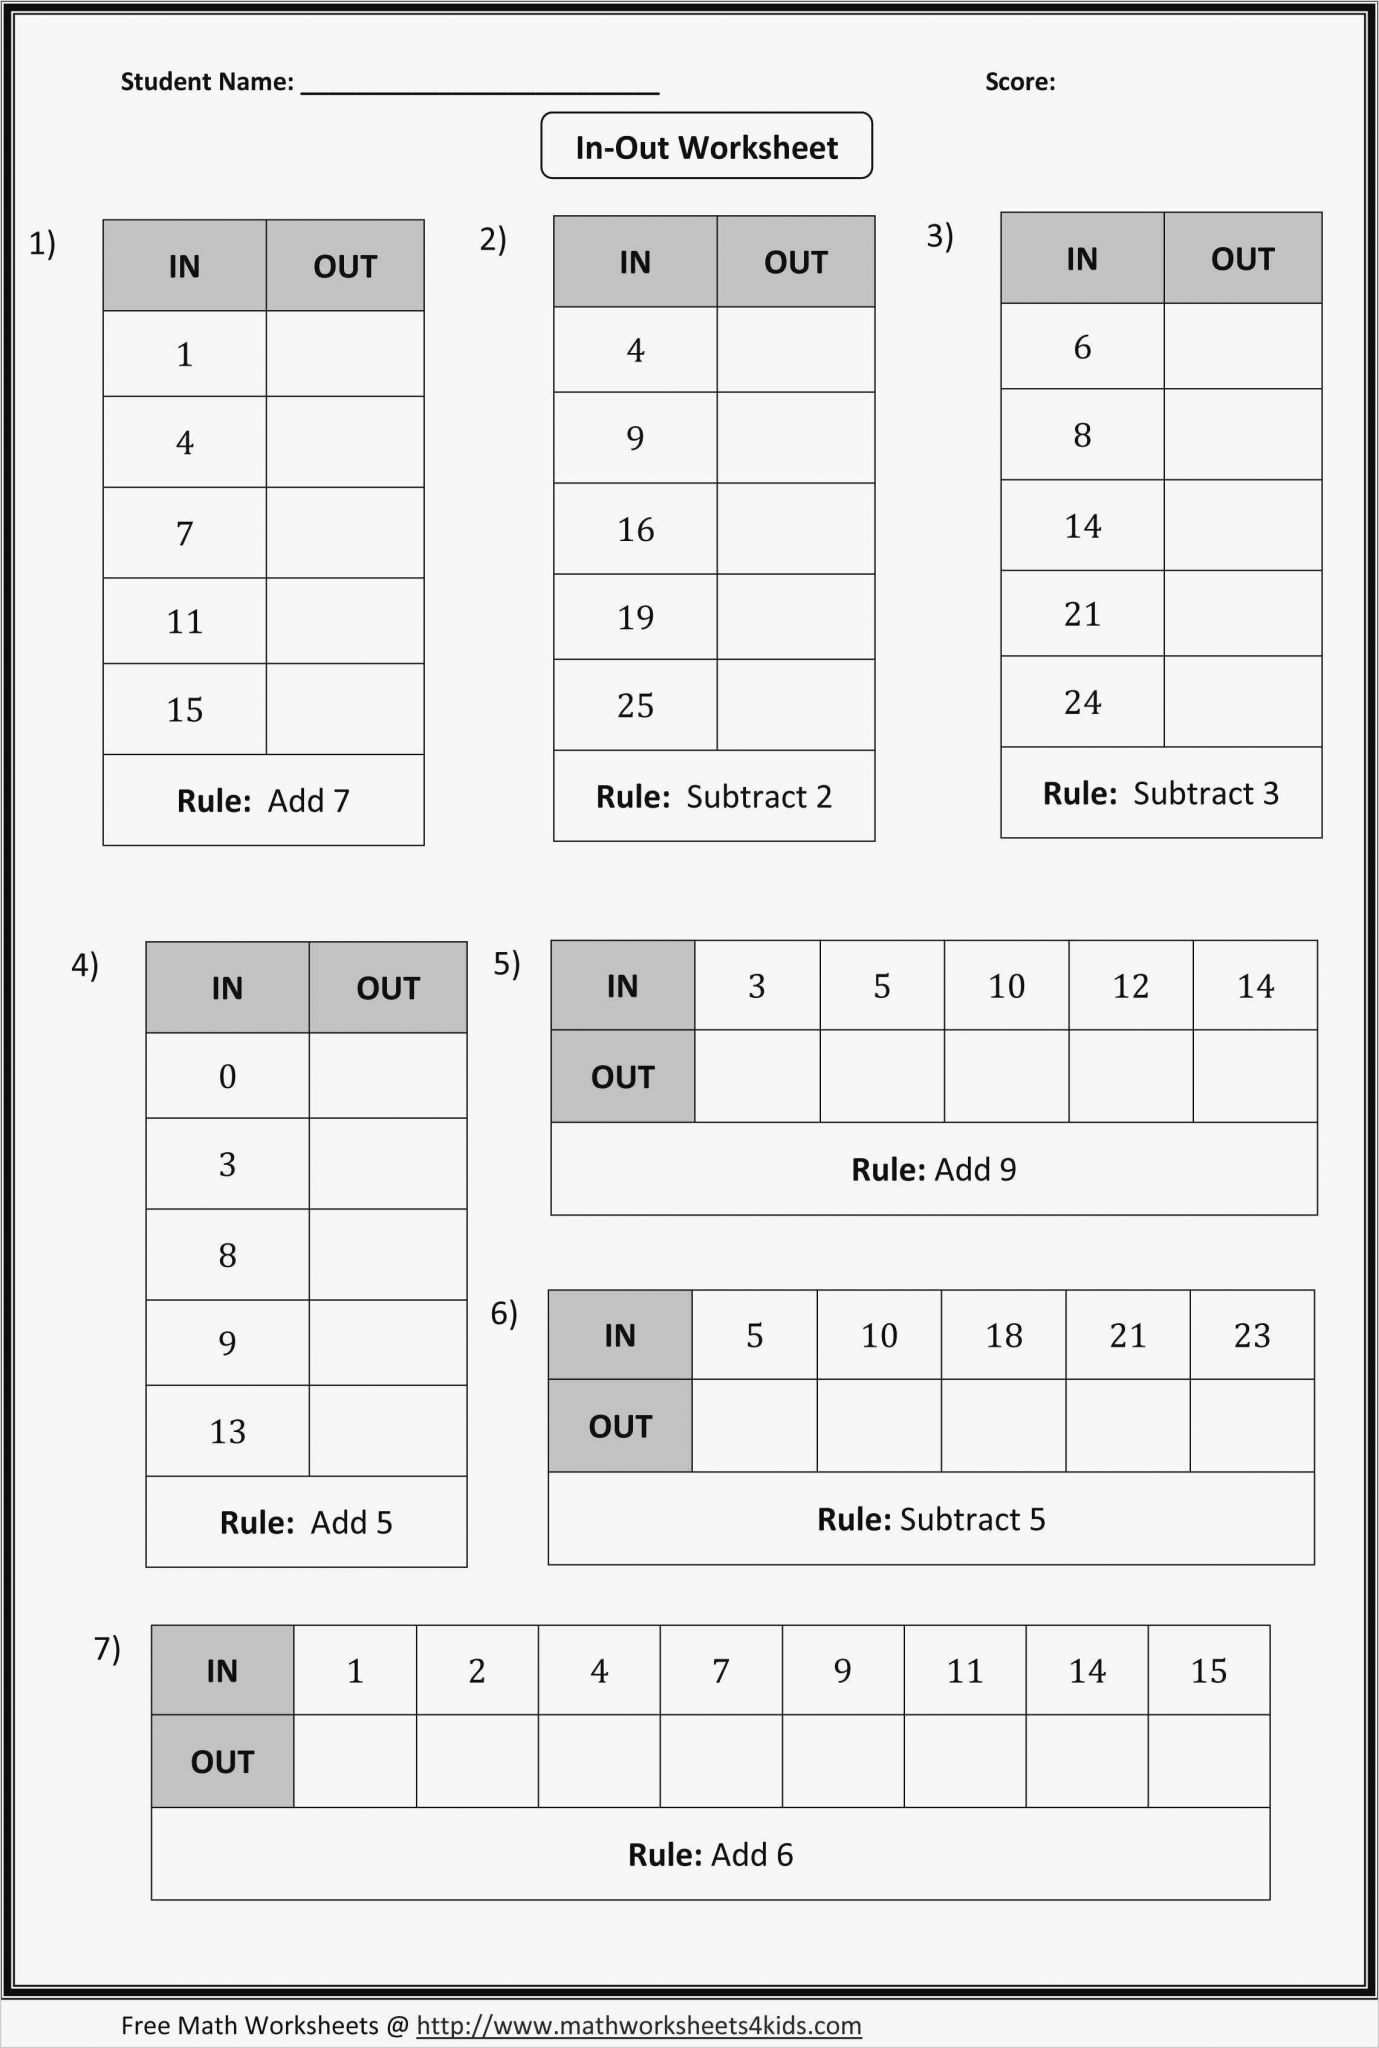 Multiplying Fractions Worksheet For 6th Grade